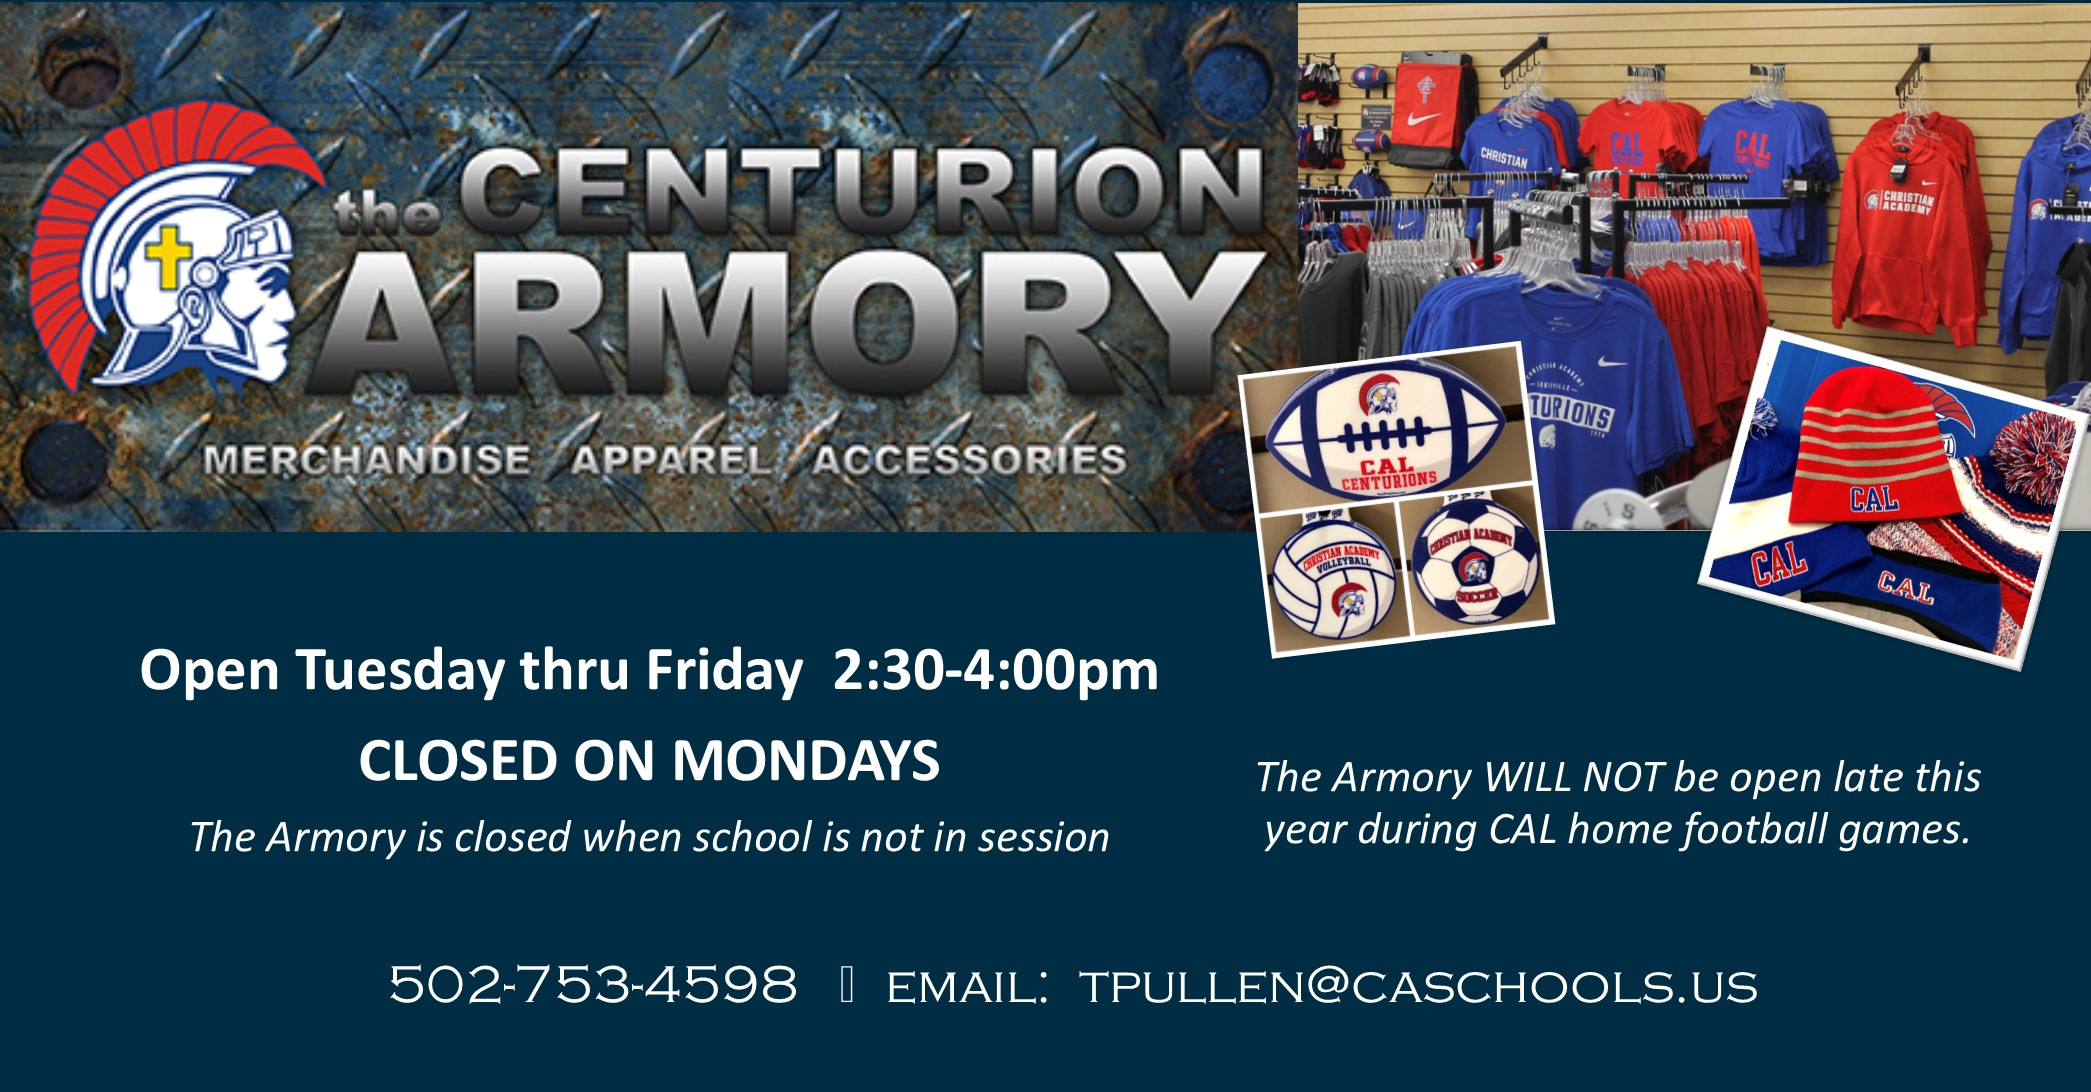 Christian Academy School System | Christian Academy of Louisville | Centurion Athletics | Armory